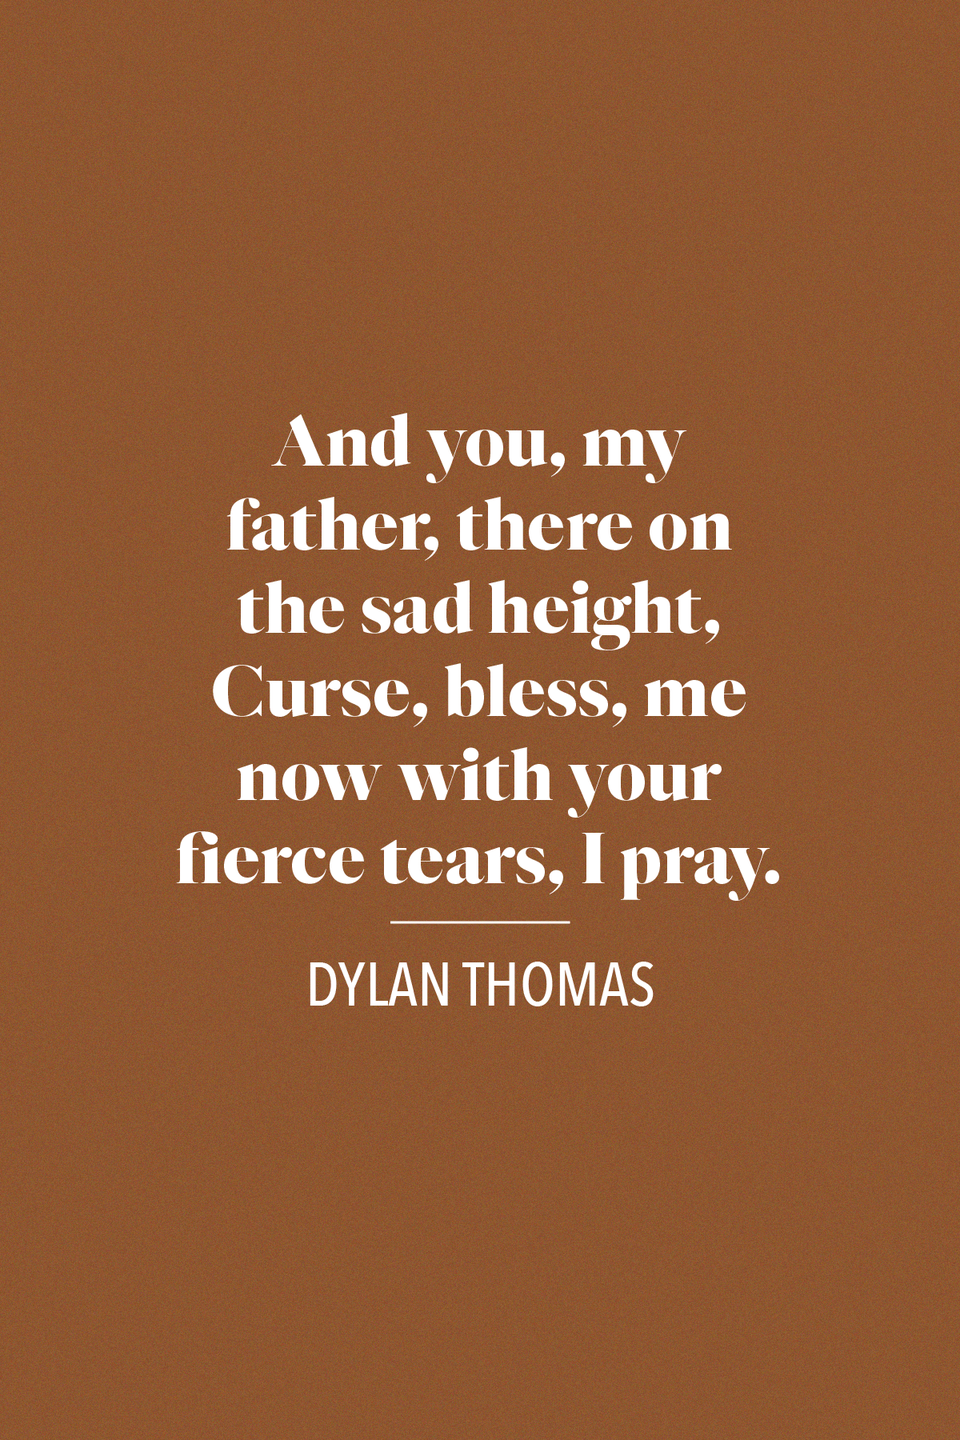 "<p>""And you, my father, there on the sad height, / Curse, bless, me now with your fierce tears, I pray. /Do not go gentle into that good night. /Rage, rage against the dying of the light,"" Welsh poet Dylan Thomas said in his poem ""<a href=""https://poets.org/poem/do-not-go-gentle-good-night"" rel=""nofollow noopener"" target=""_blank"" data-ylk=""slk:Do Not Go Gentle Good Night"" class=""link rapid-noclick-resp"">Do Not Go Gentle Good Night</a>"" in 1951.</p>"